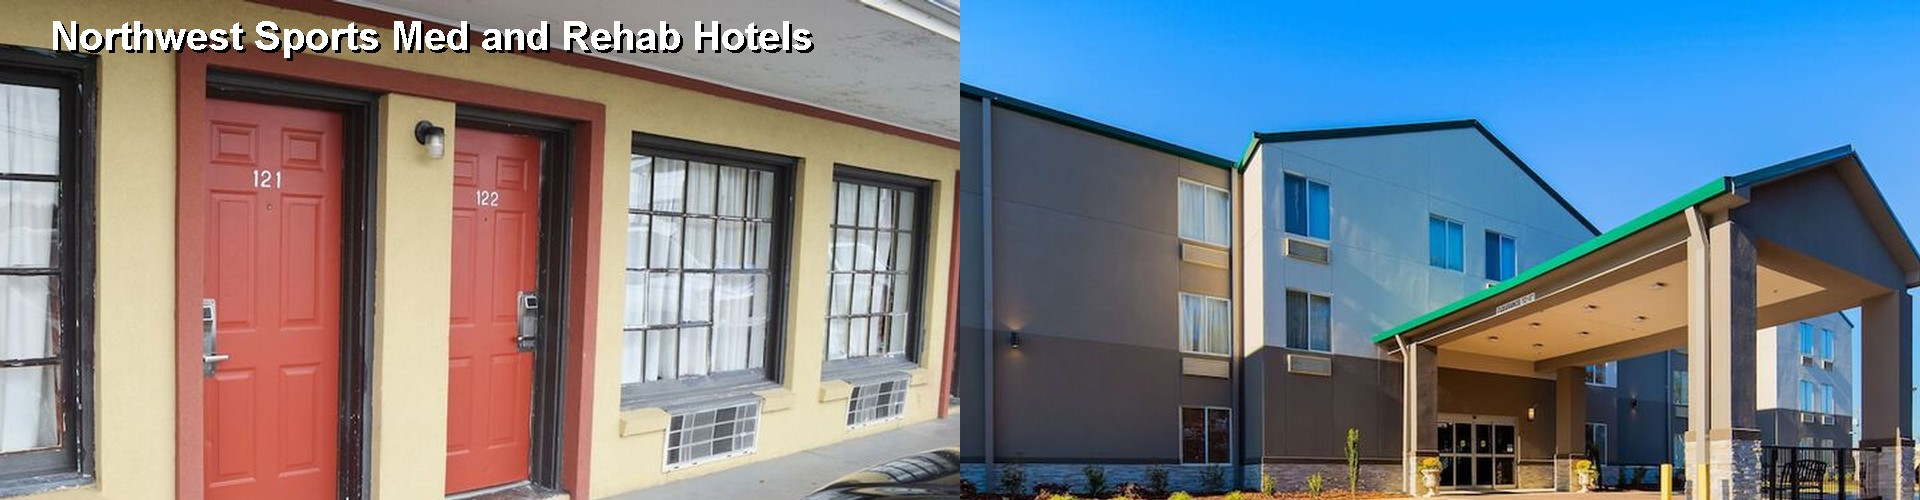 5 Best Hotels near Northwest Sports Med and Rehab